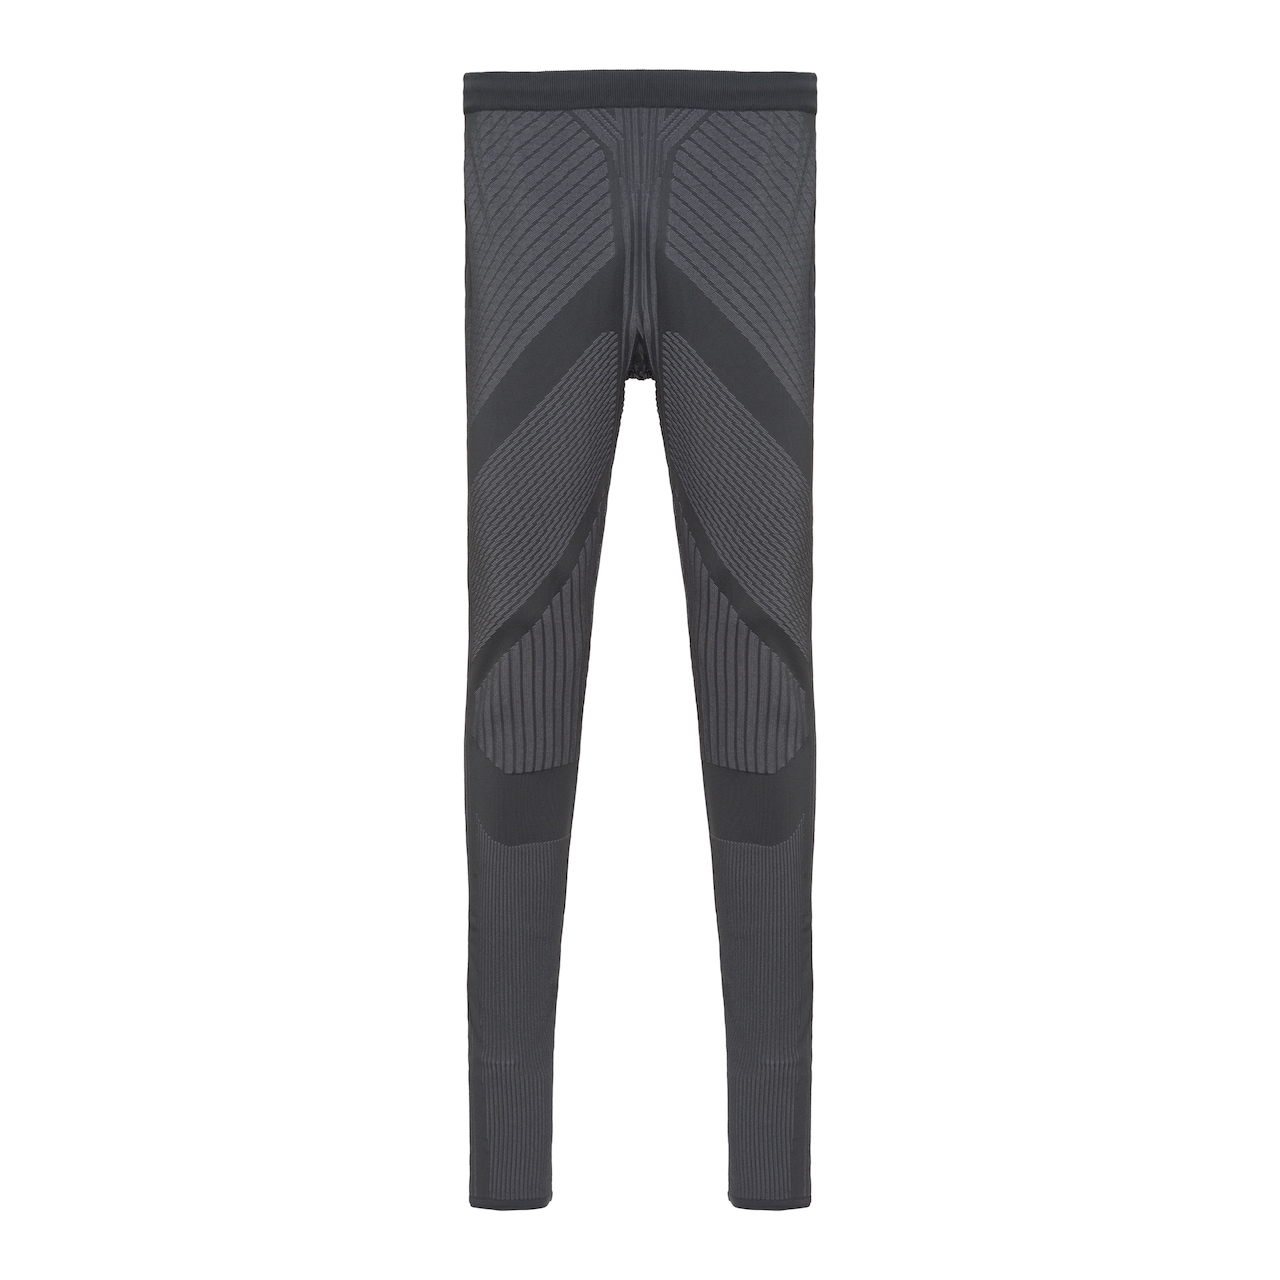 Technical Nylon trousers